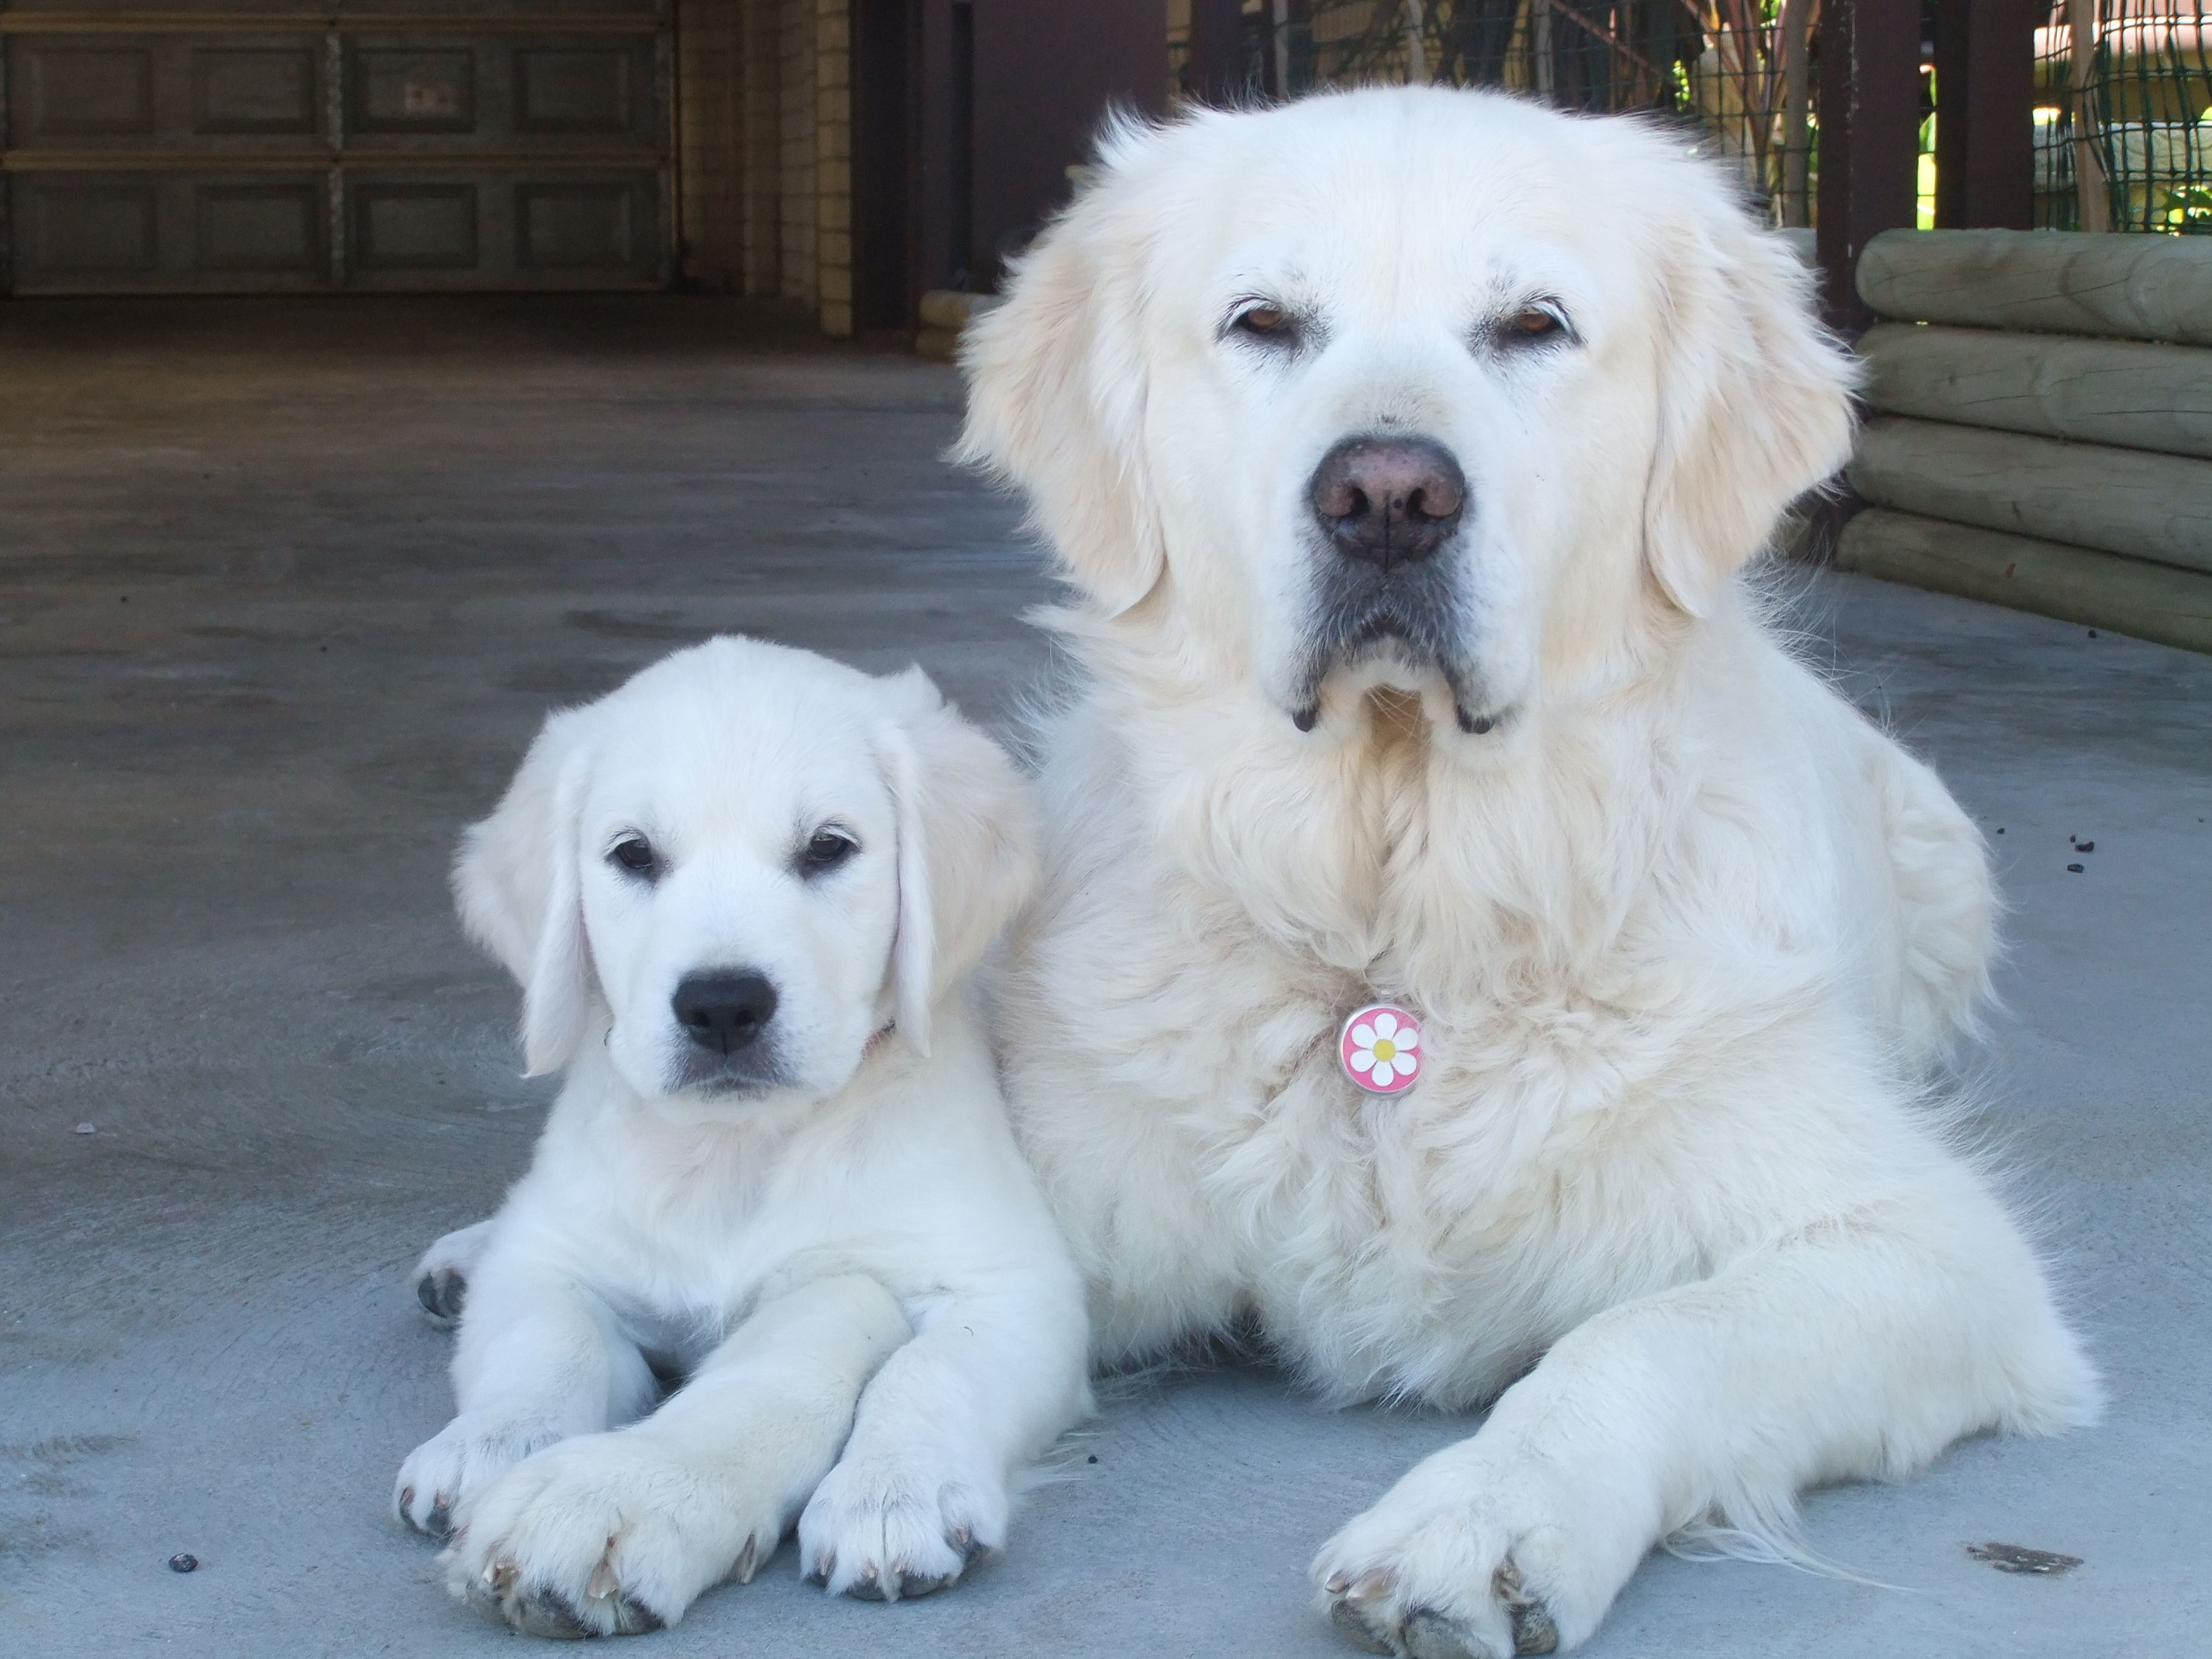 English Creme Golden Retriever Dog & Puppy...learning to